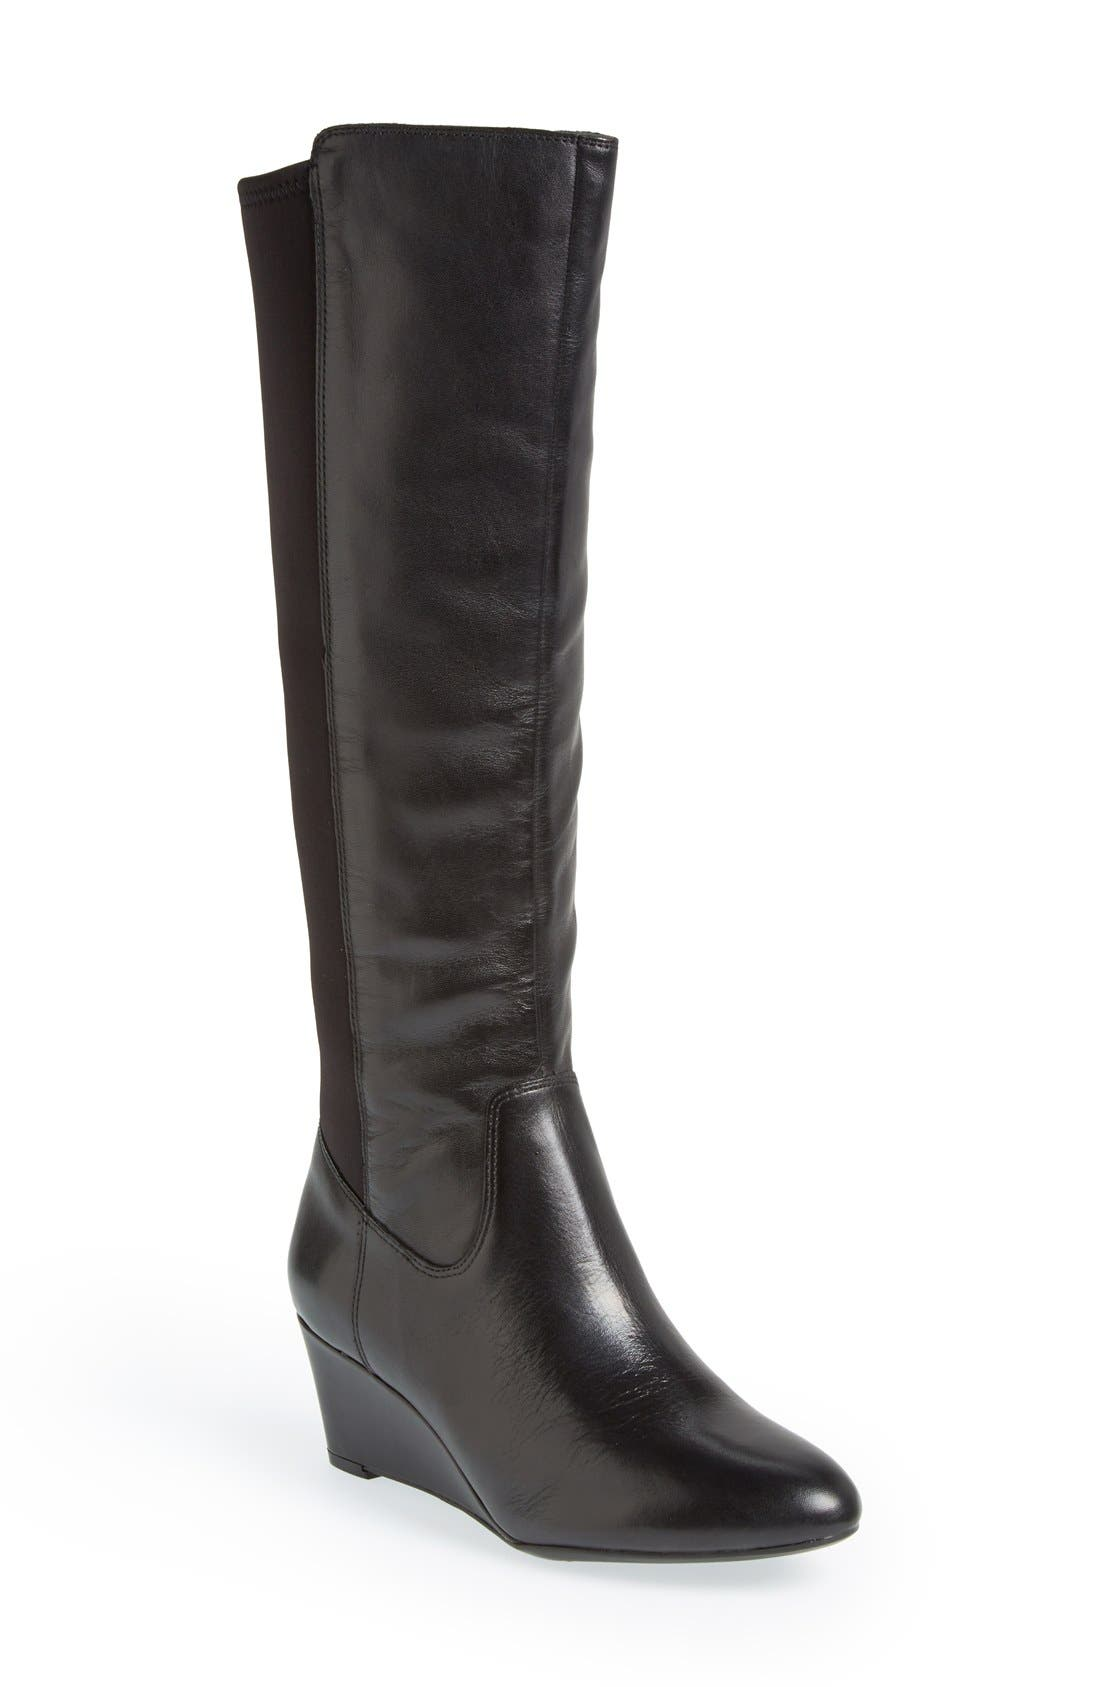 Alternate Image 1 Selected - Naturalizer 'Quinlee' Knee High Boot (Women)